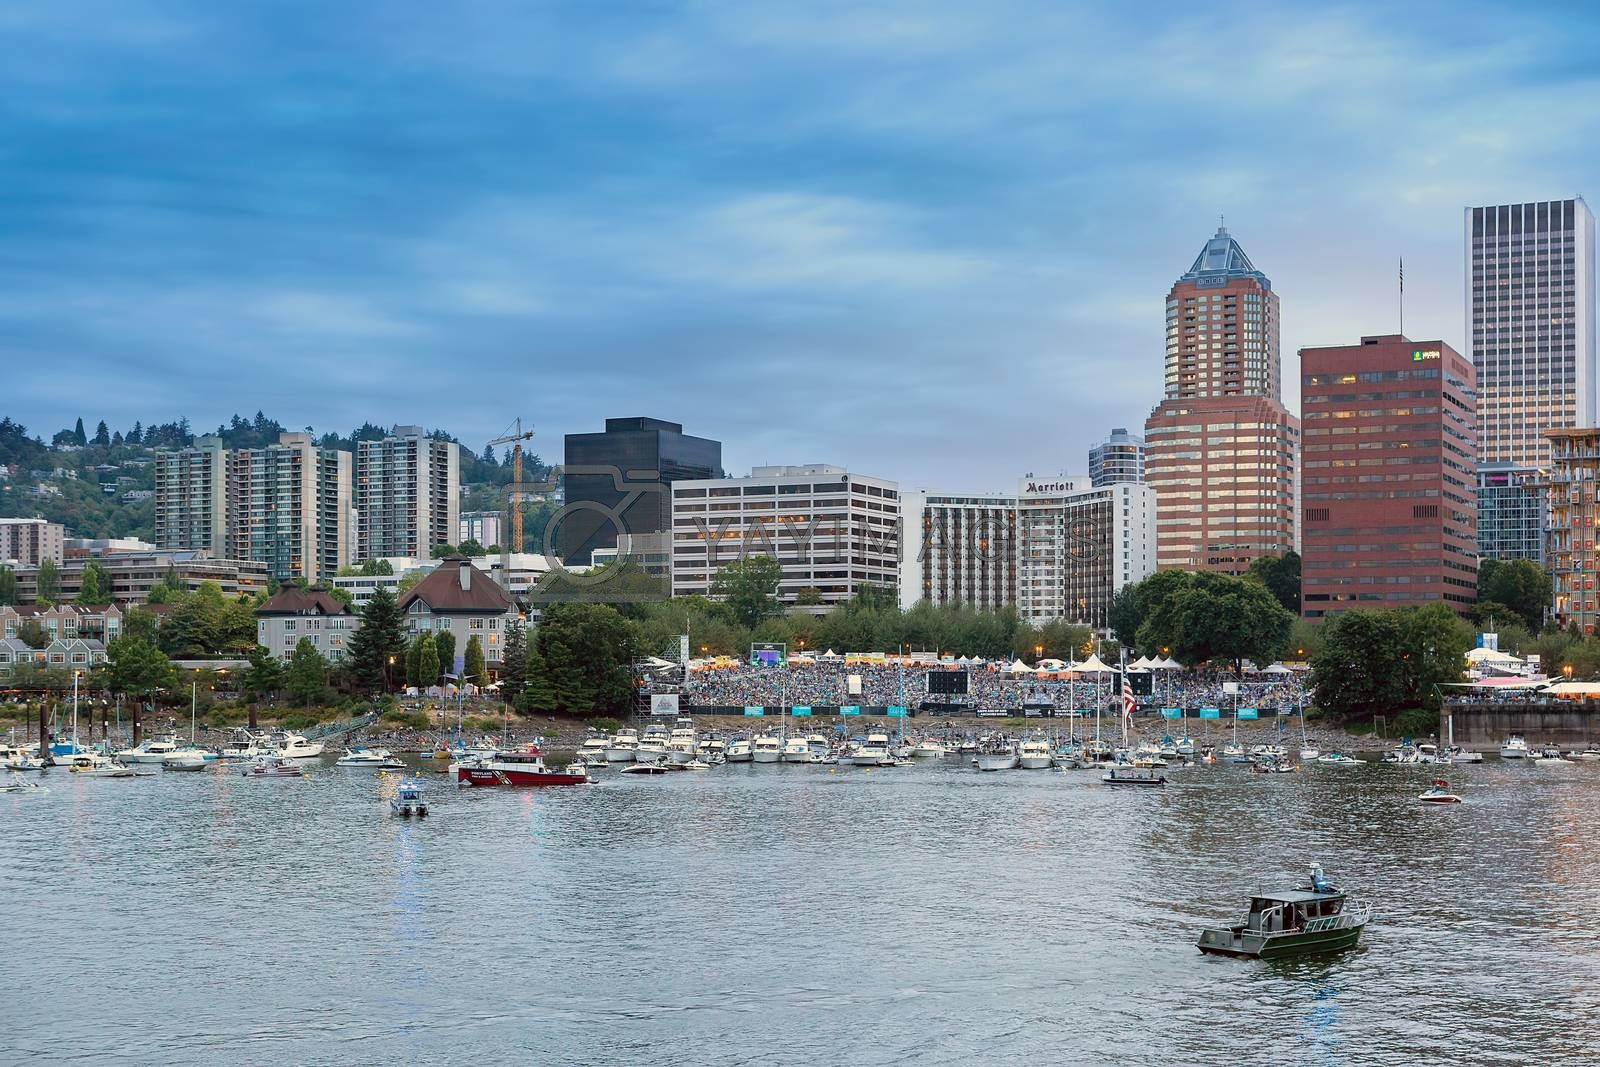 PORTLAND, OREGON - JULY 4, 2018: Portland Waterfront Blues Festival spectators along the Willamette River waterfront waiting for Indpendence Day fireworks show in downtown Portland Oregon.